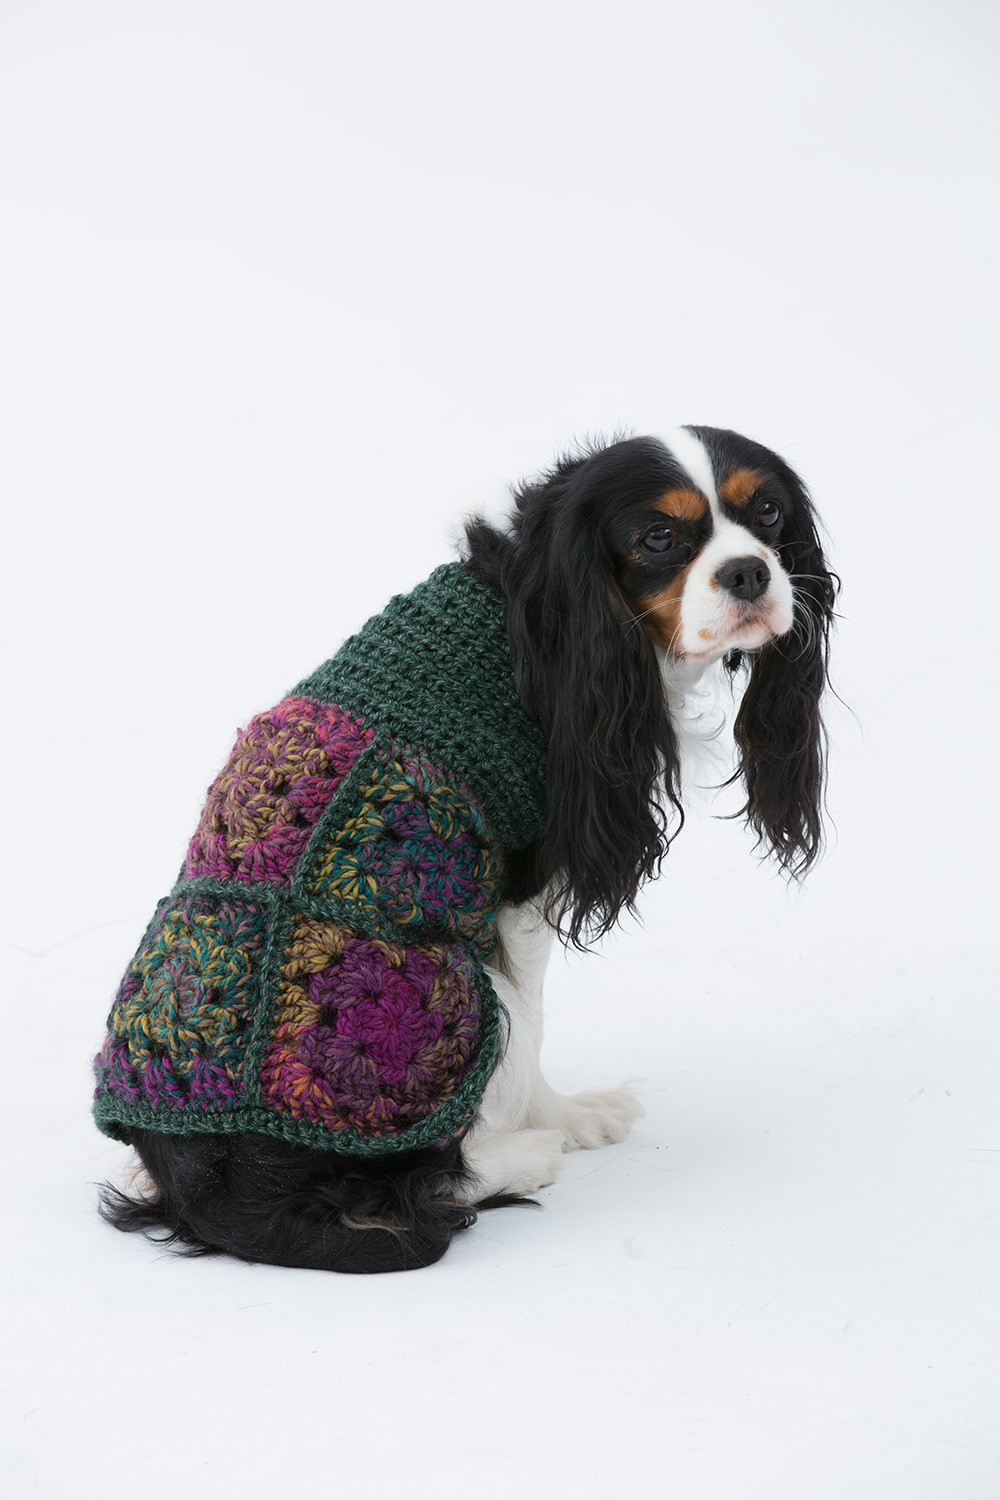 Crochet Dog Sweater Best Of Hippie Dog Sweater In Lion Brand Unique L Of New 46 Photos Crochet Dog Sweater